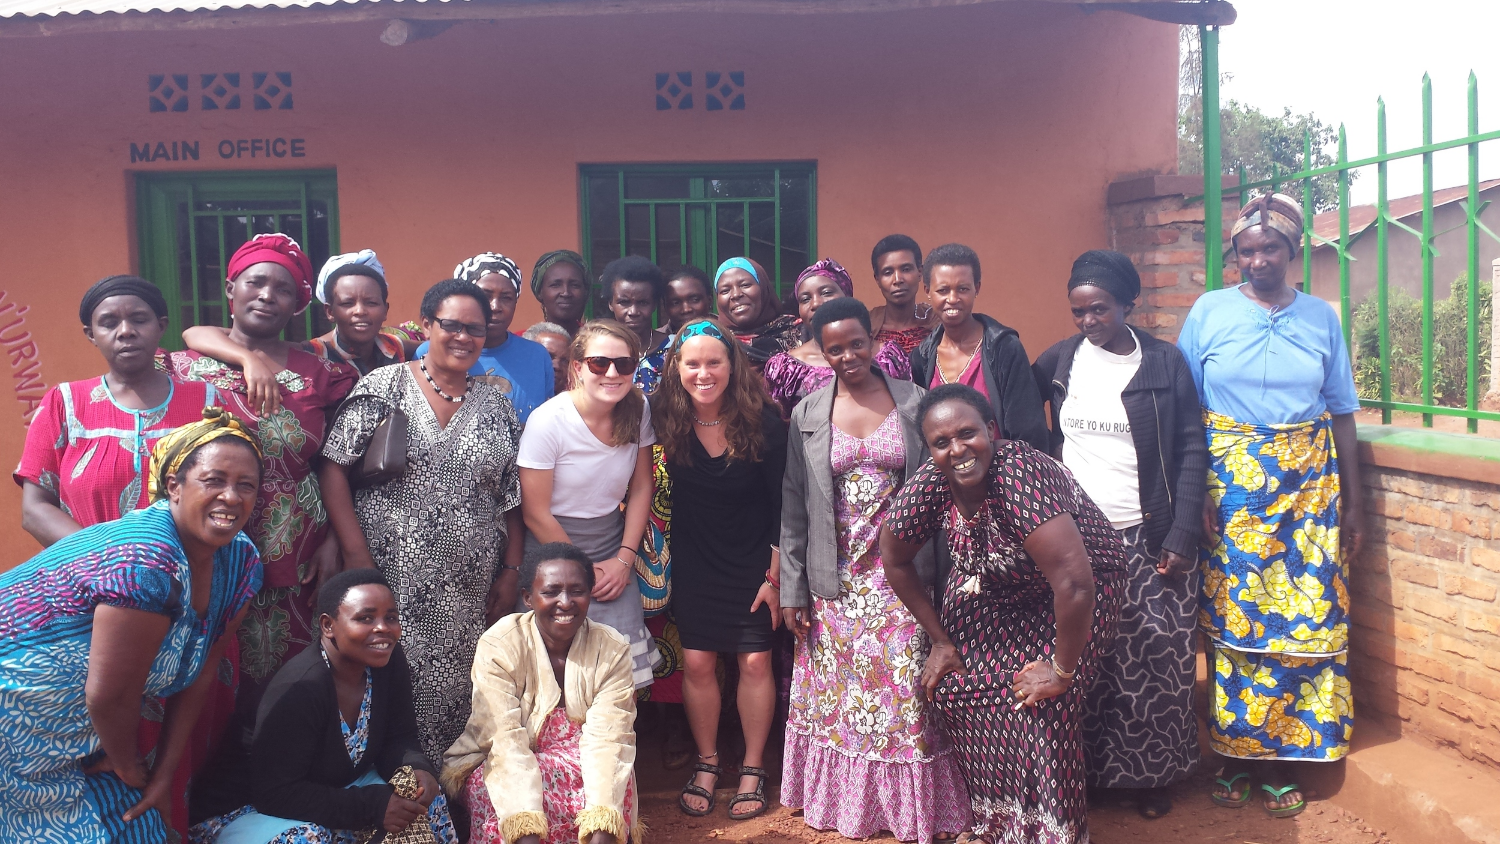 Flavia, pictured right in red & black dress, poses with her co-operative women, with Meg & Heather in Kayonza.